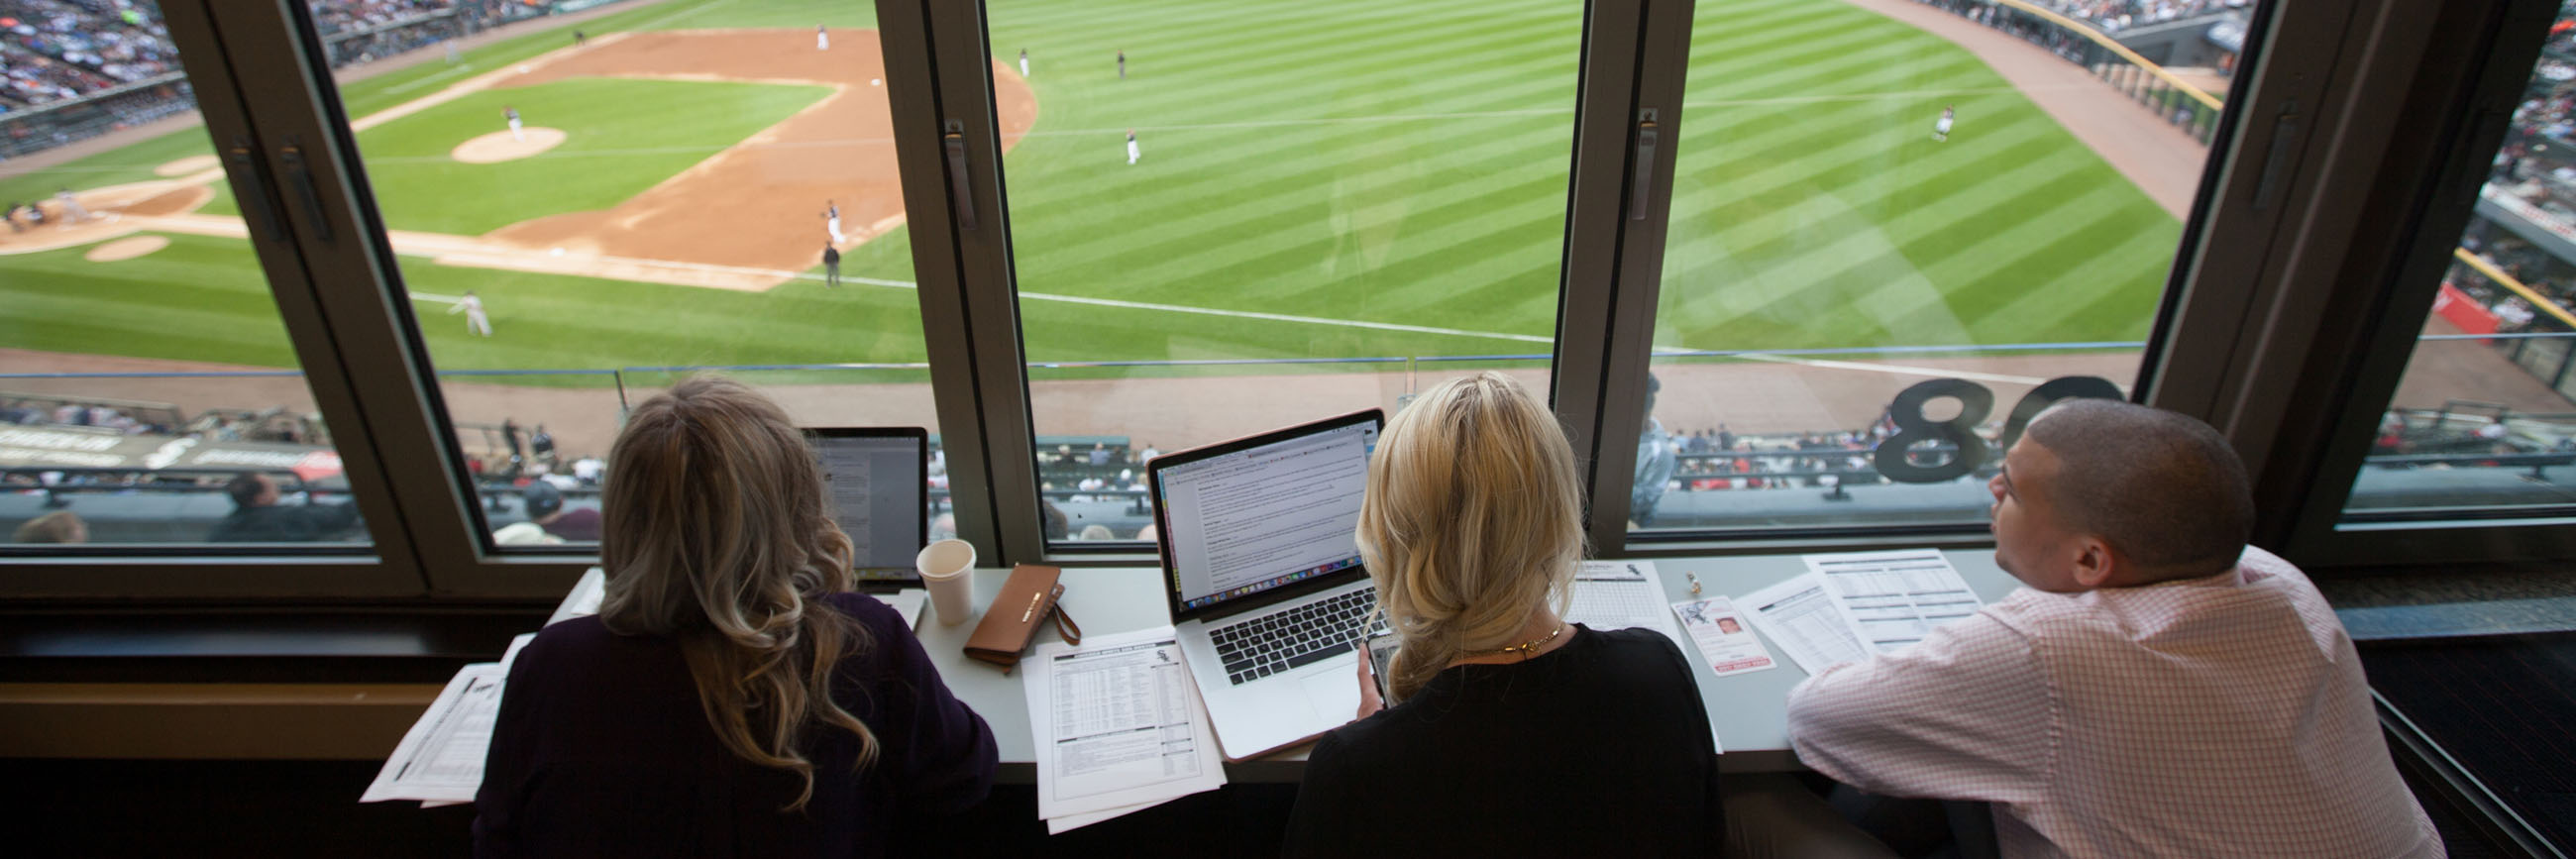 Students in the press box at a baseball game.